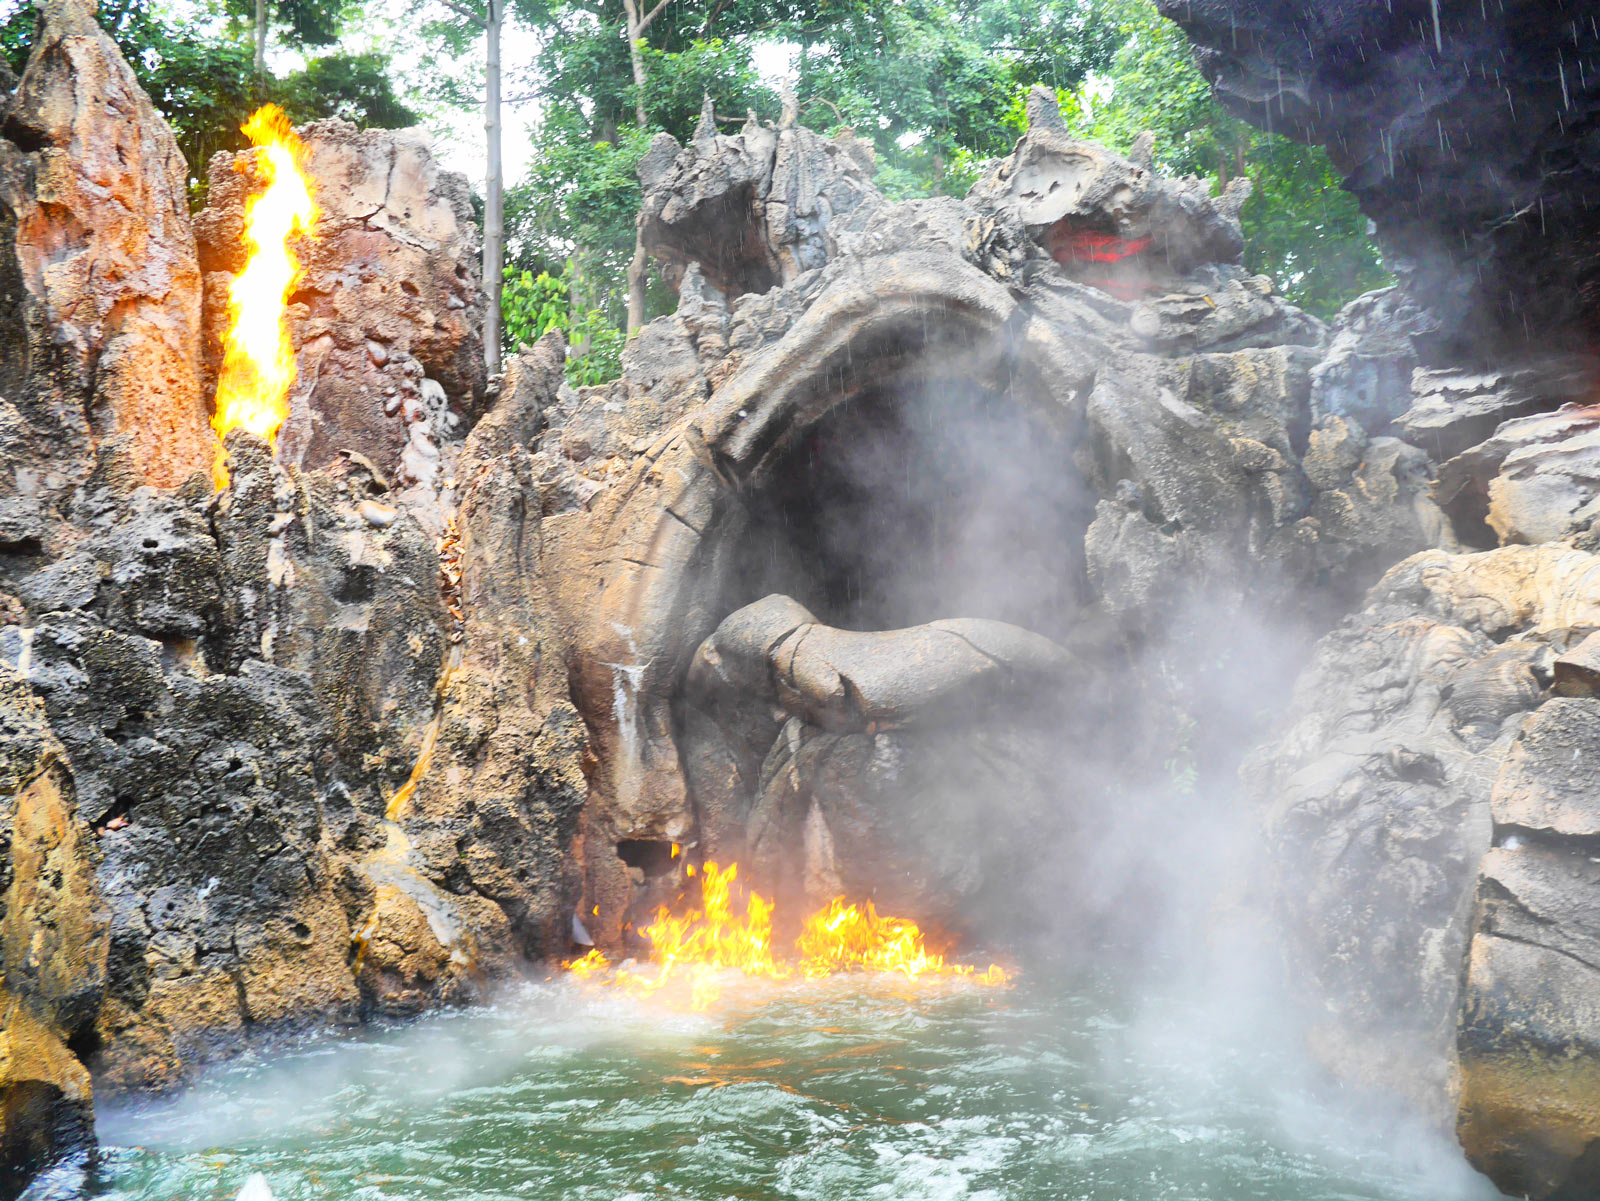 Cruise Through Fiery Waters on a Jungle Adventure - Hong Kong, China